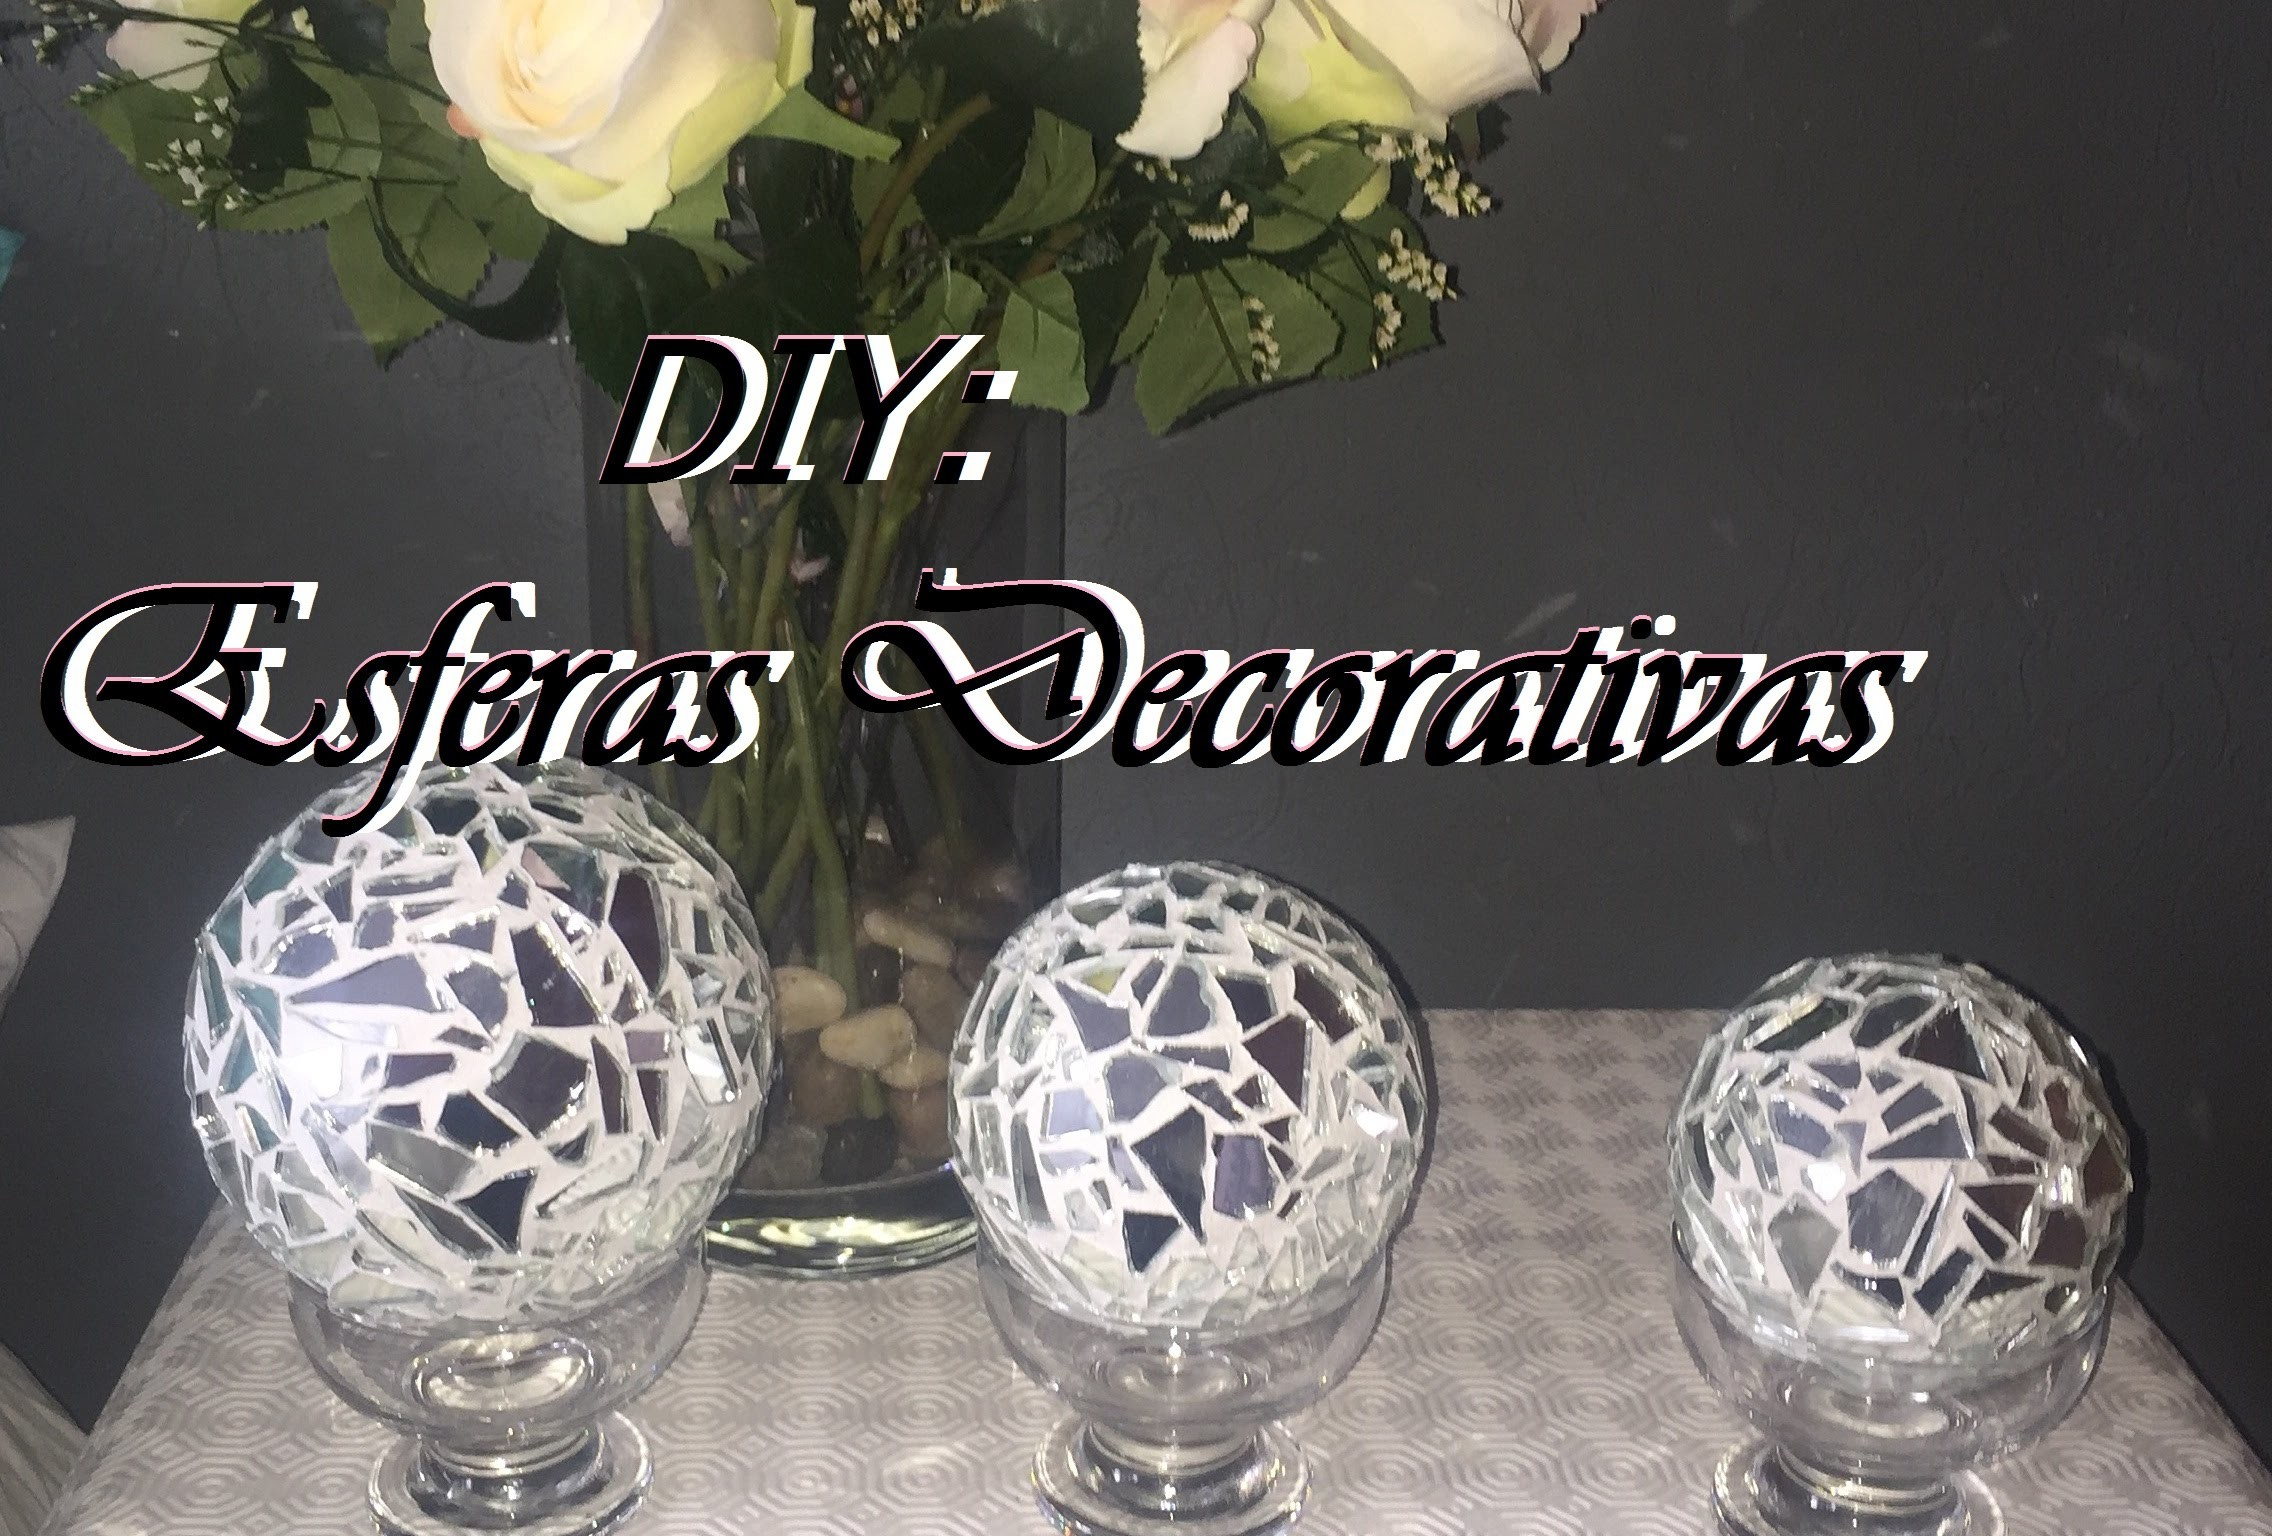 DIY: Esferas Decorativas